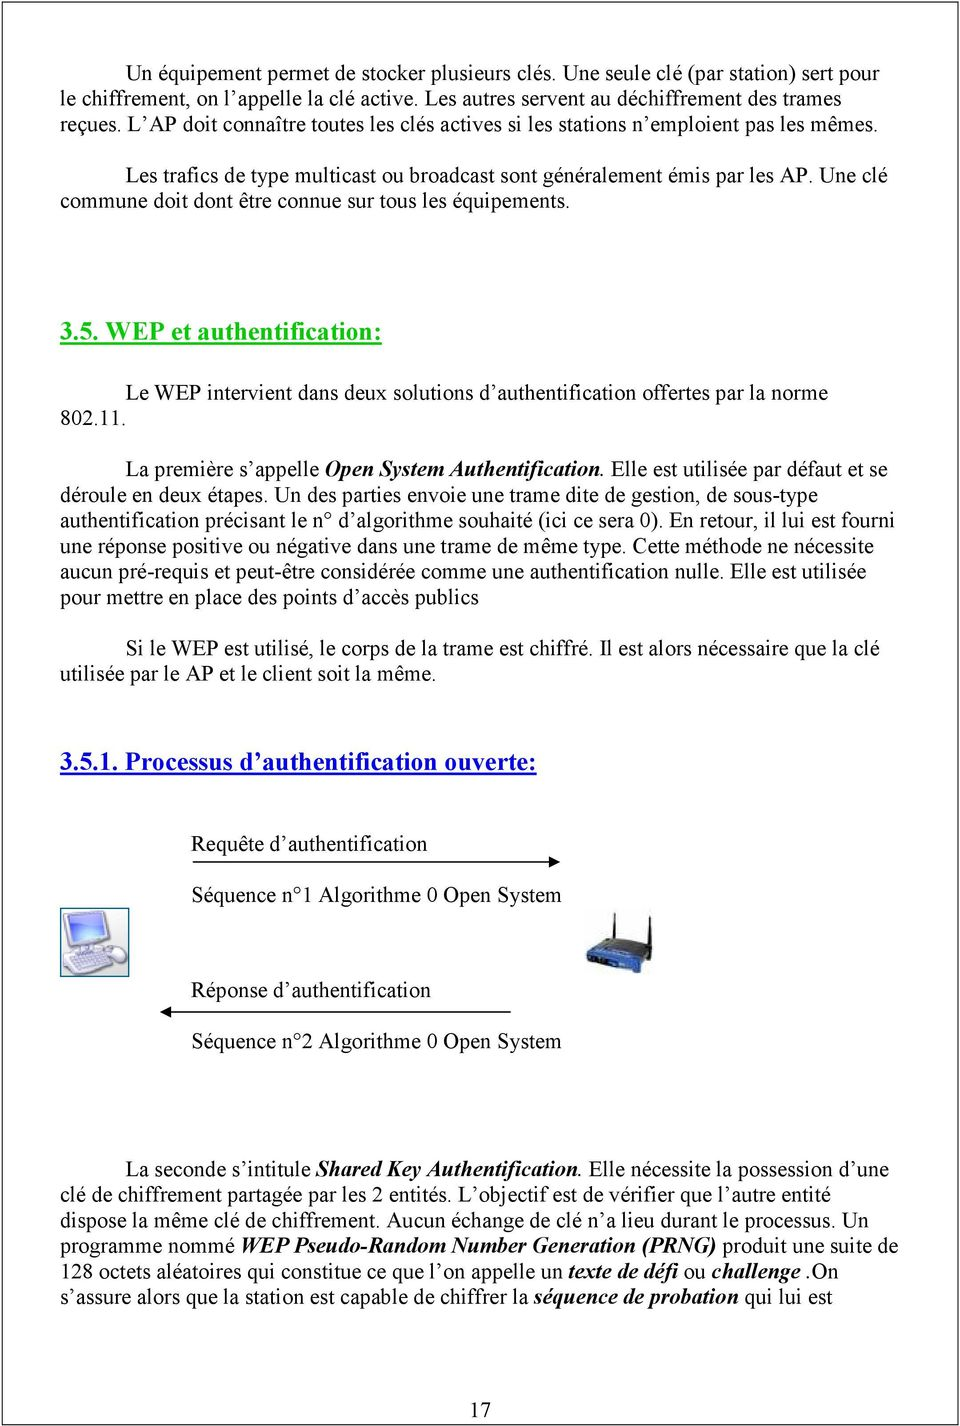 Une clé commune doit dont être connue sur tous les équipements. 3.5. WEP et authentification: Le WEP intervient dans deux solutions d authentification offertes par la norme 802.11.